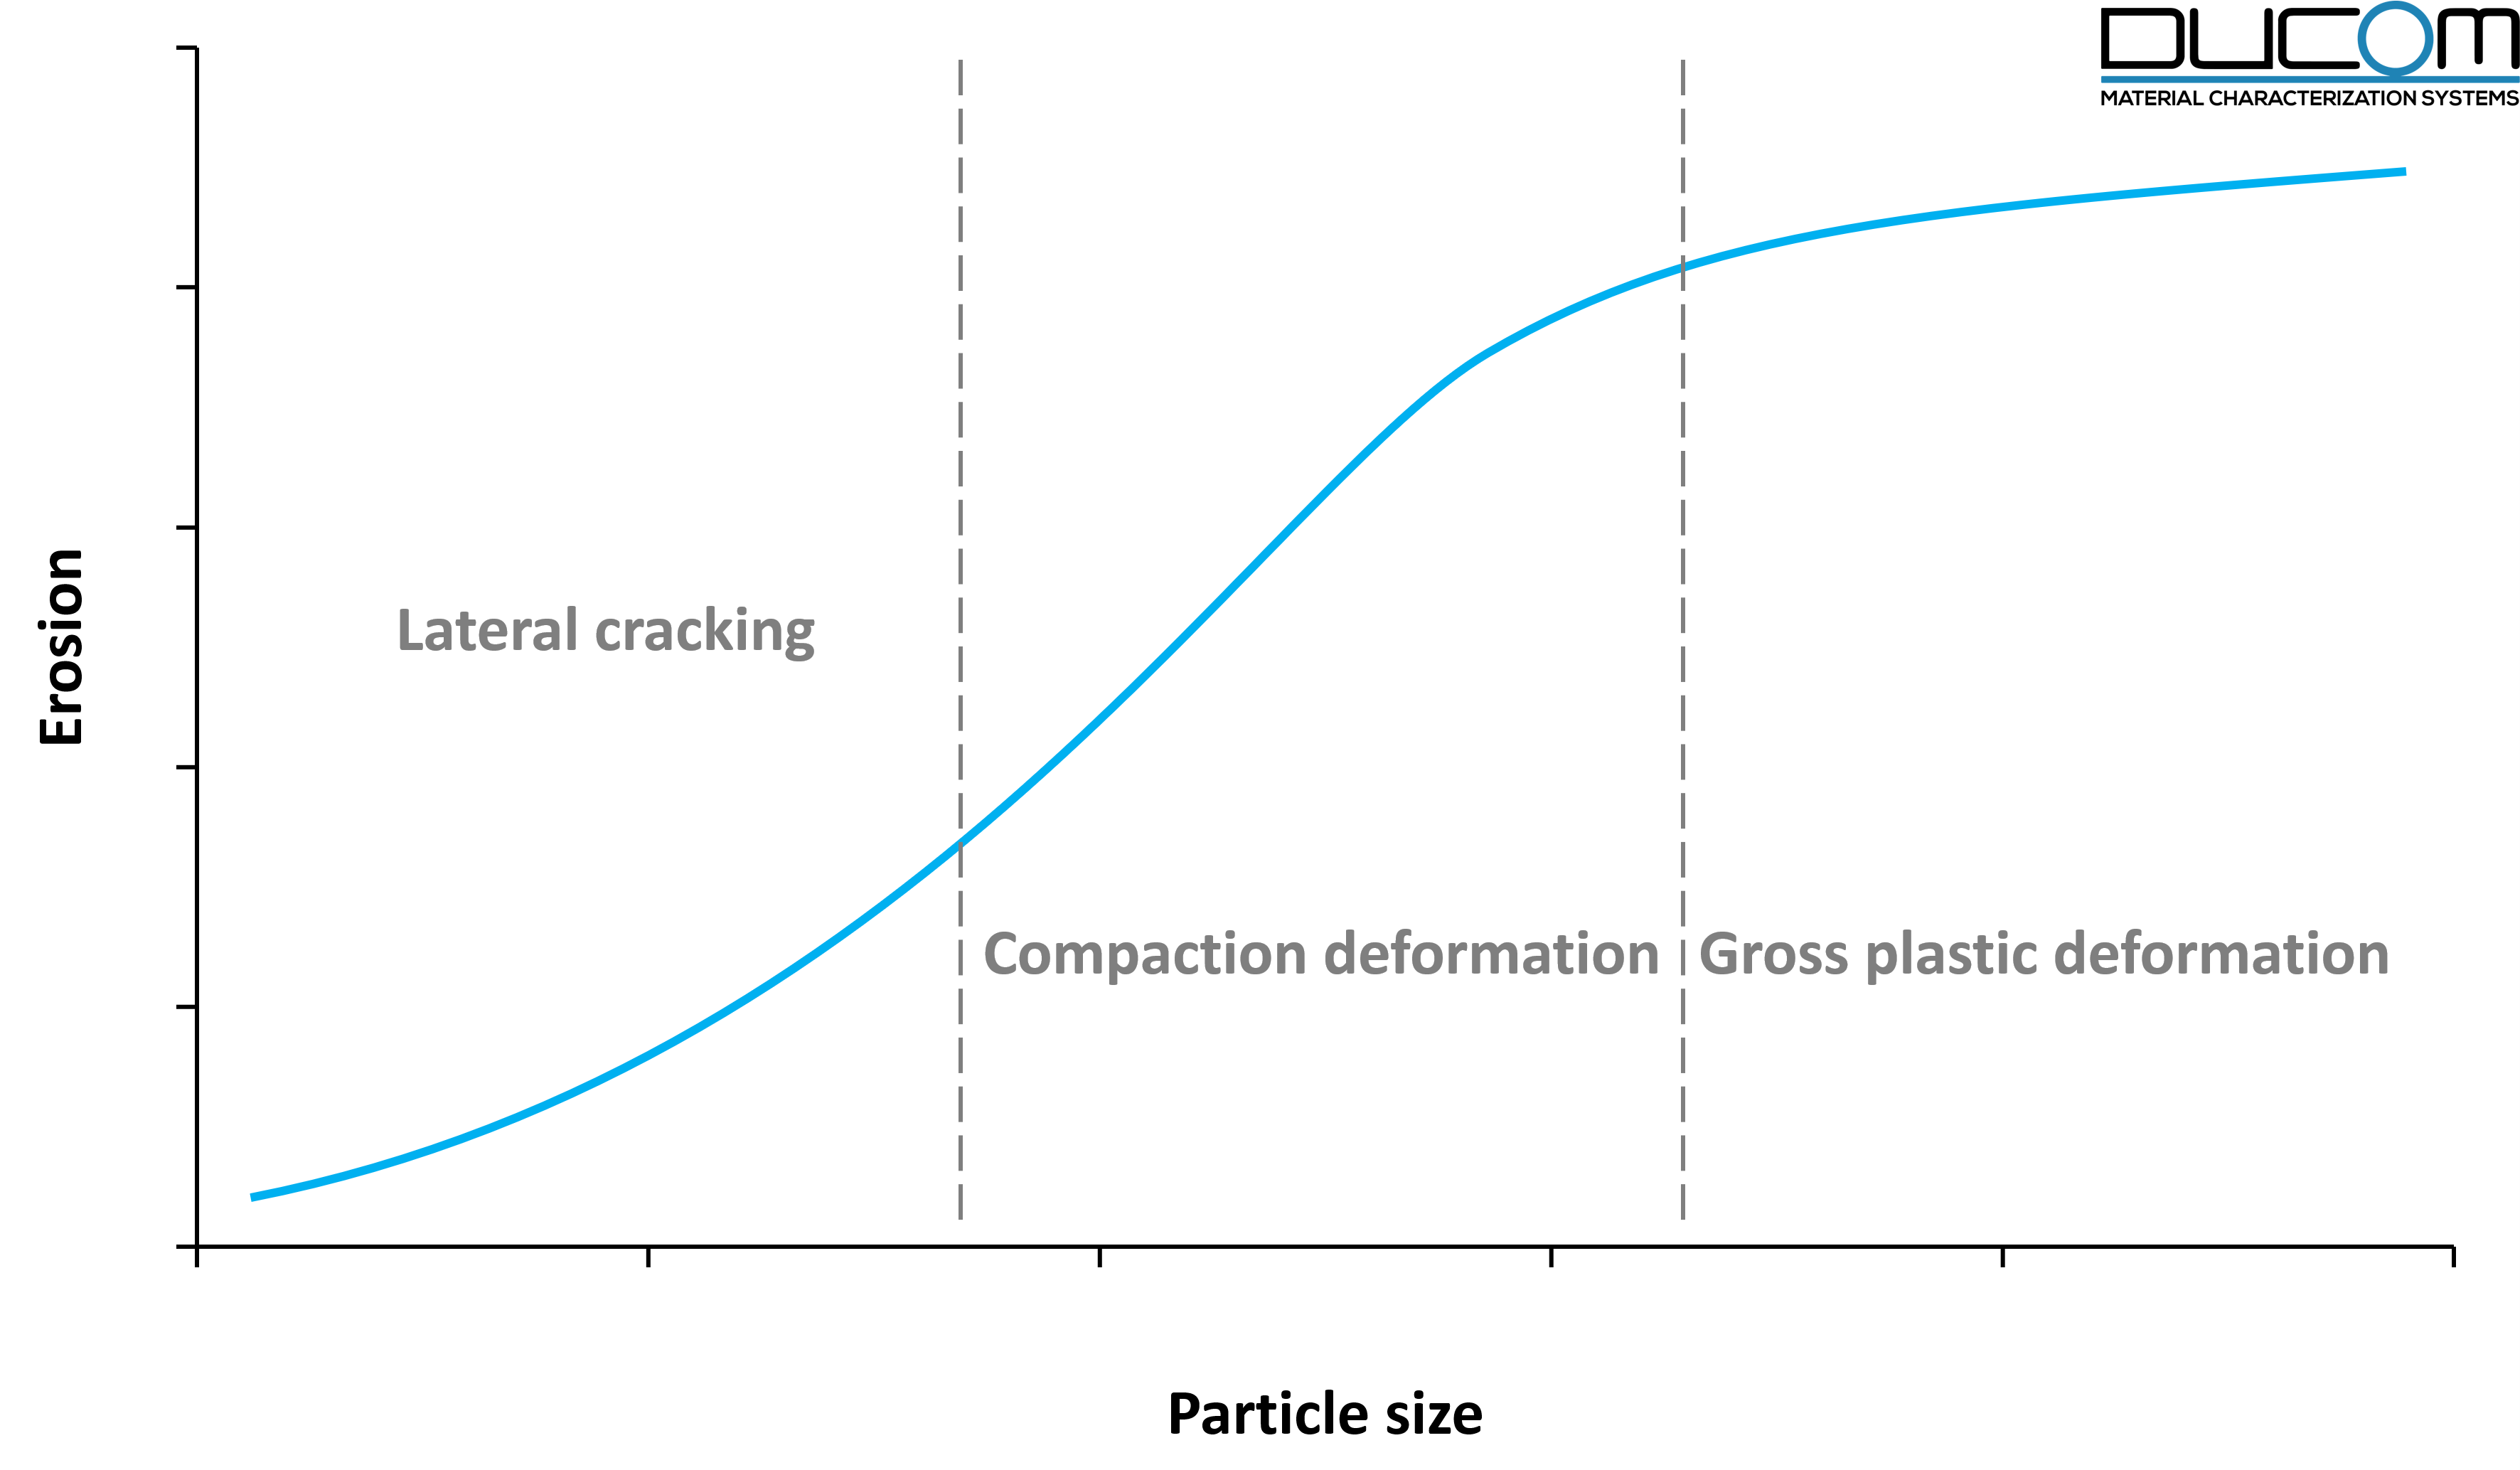 Erosion of TBCs with respect to particle size